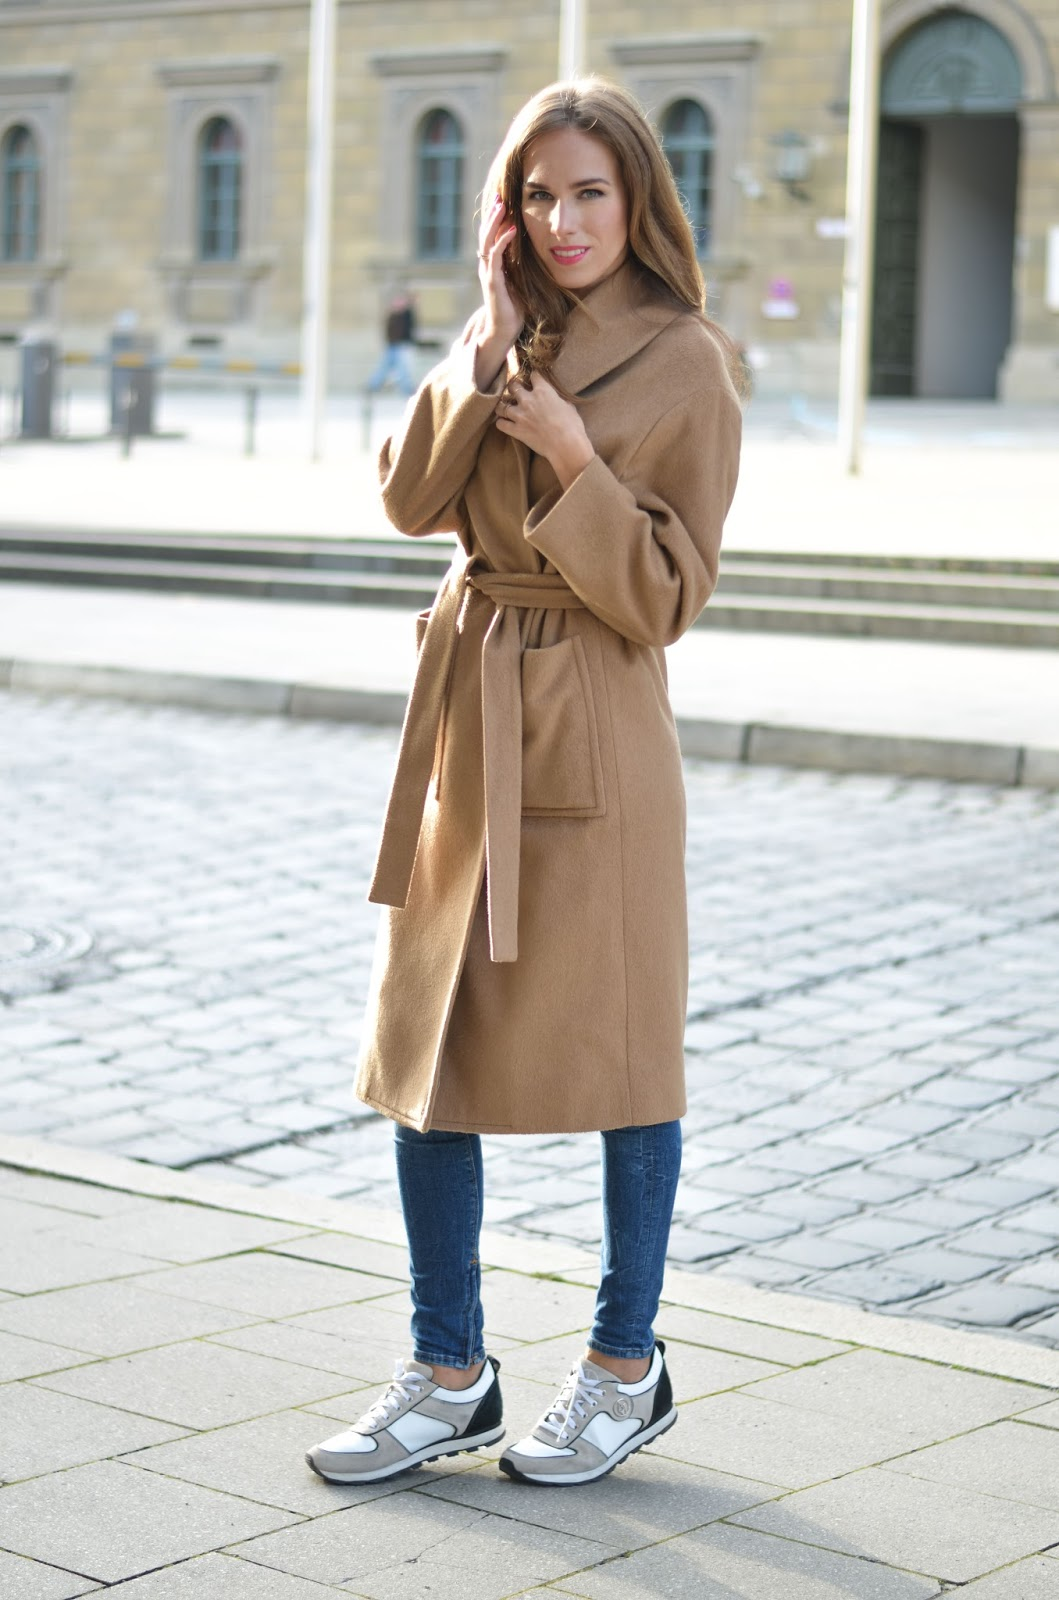 kristjaana mere camel coat fall outfit with skinny jeans white sneakers